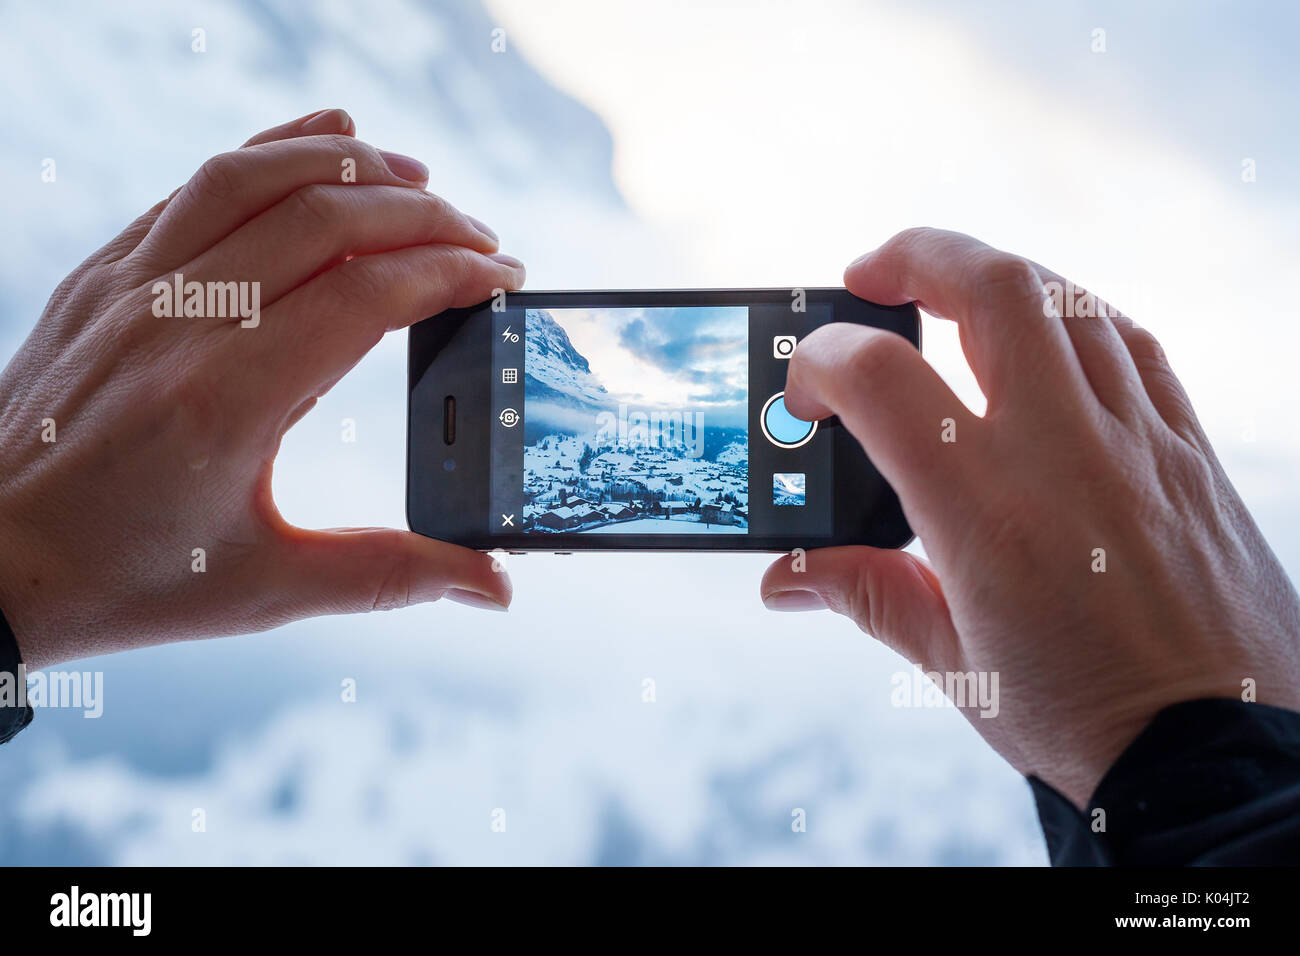 GRINDELWALD, SWITZERLAND - FEBRUARY 4, 2014: Woman taking a photograph of mountains using the Instagram App on an Apple iPhone. Instagram allows users - Stock Image